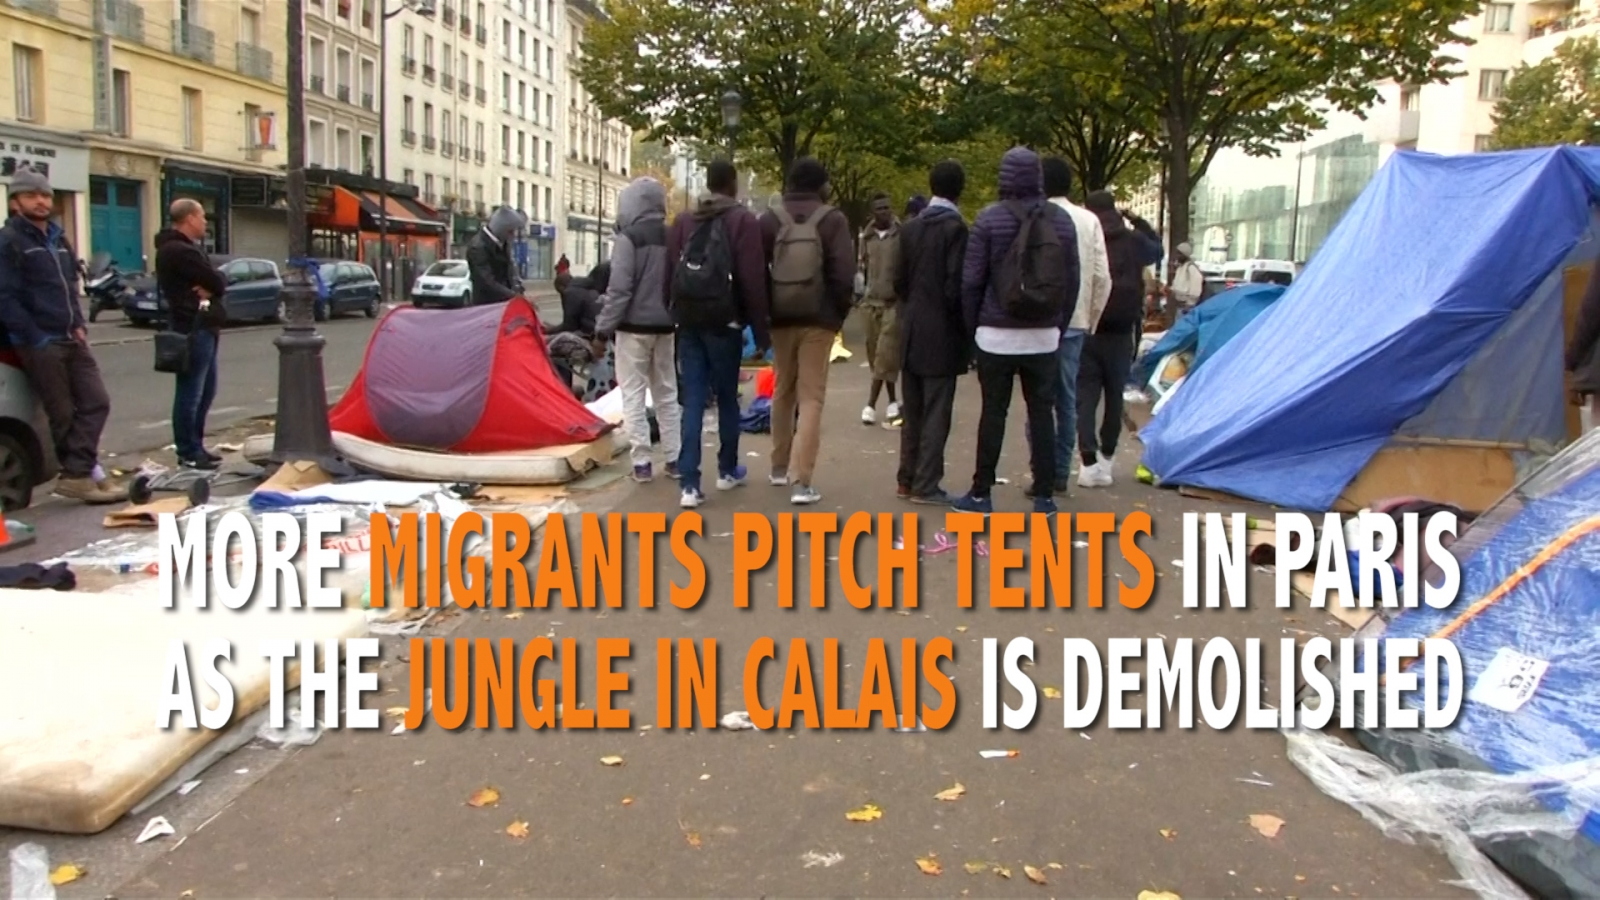 Migrants sleeping in tents in Paris